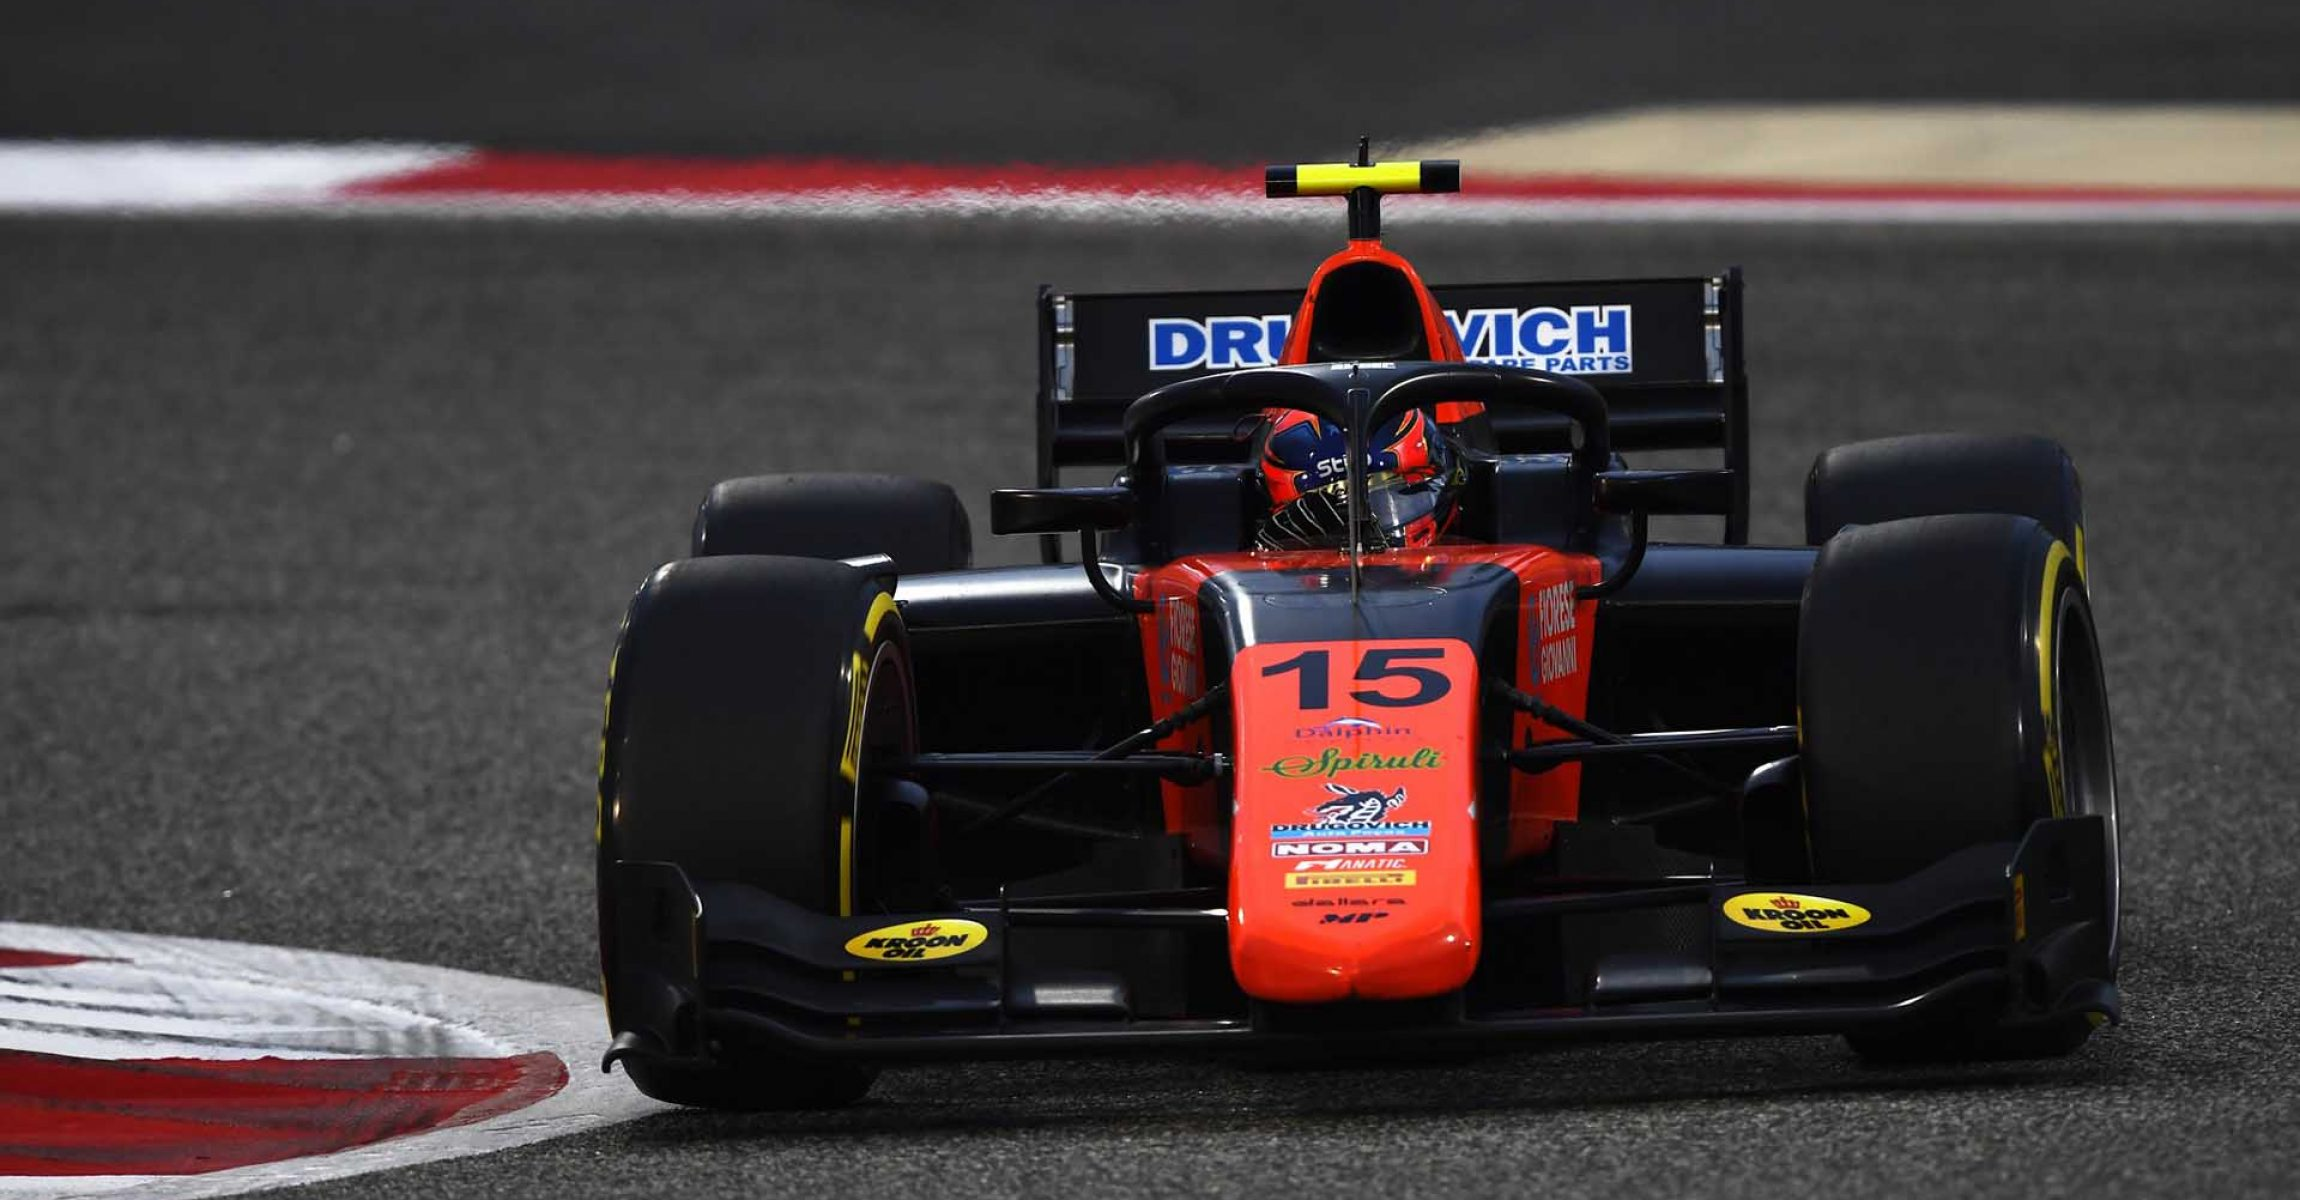 BAHRAIN, BAHRAIN - NOVEMBER 27: Felipe Drugovich of Brazil and MP Motosport (15) drives on track during qualifying ahead of Round 11:Sakhir of the Formula 2 Championship at Bahrain International Circuit on November 27, 2020 in Bahrain, Bahrain. (Photo by Rudy Carezzevoli/Getty Images)